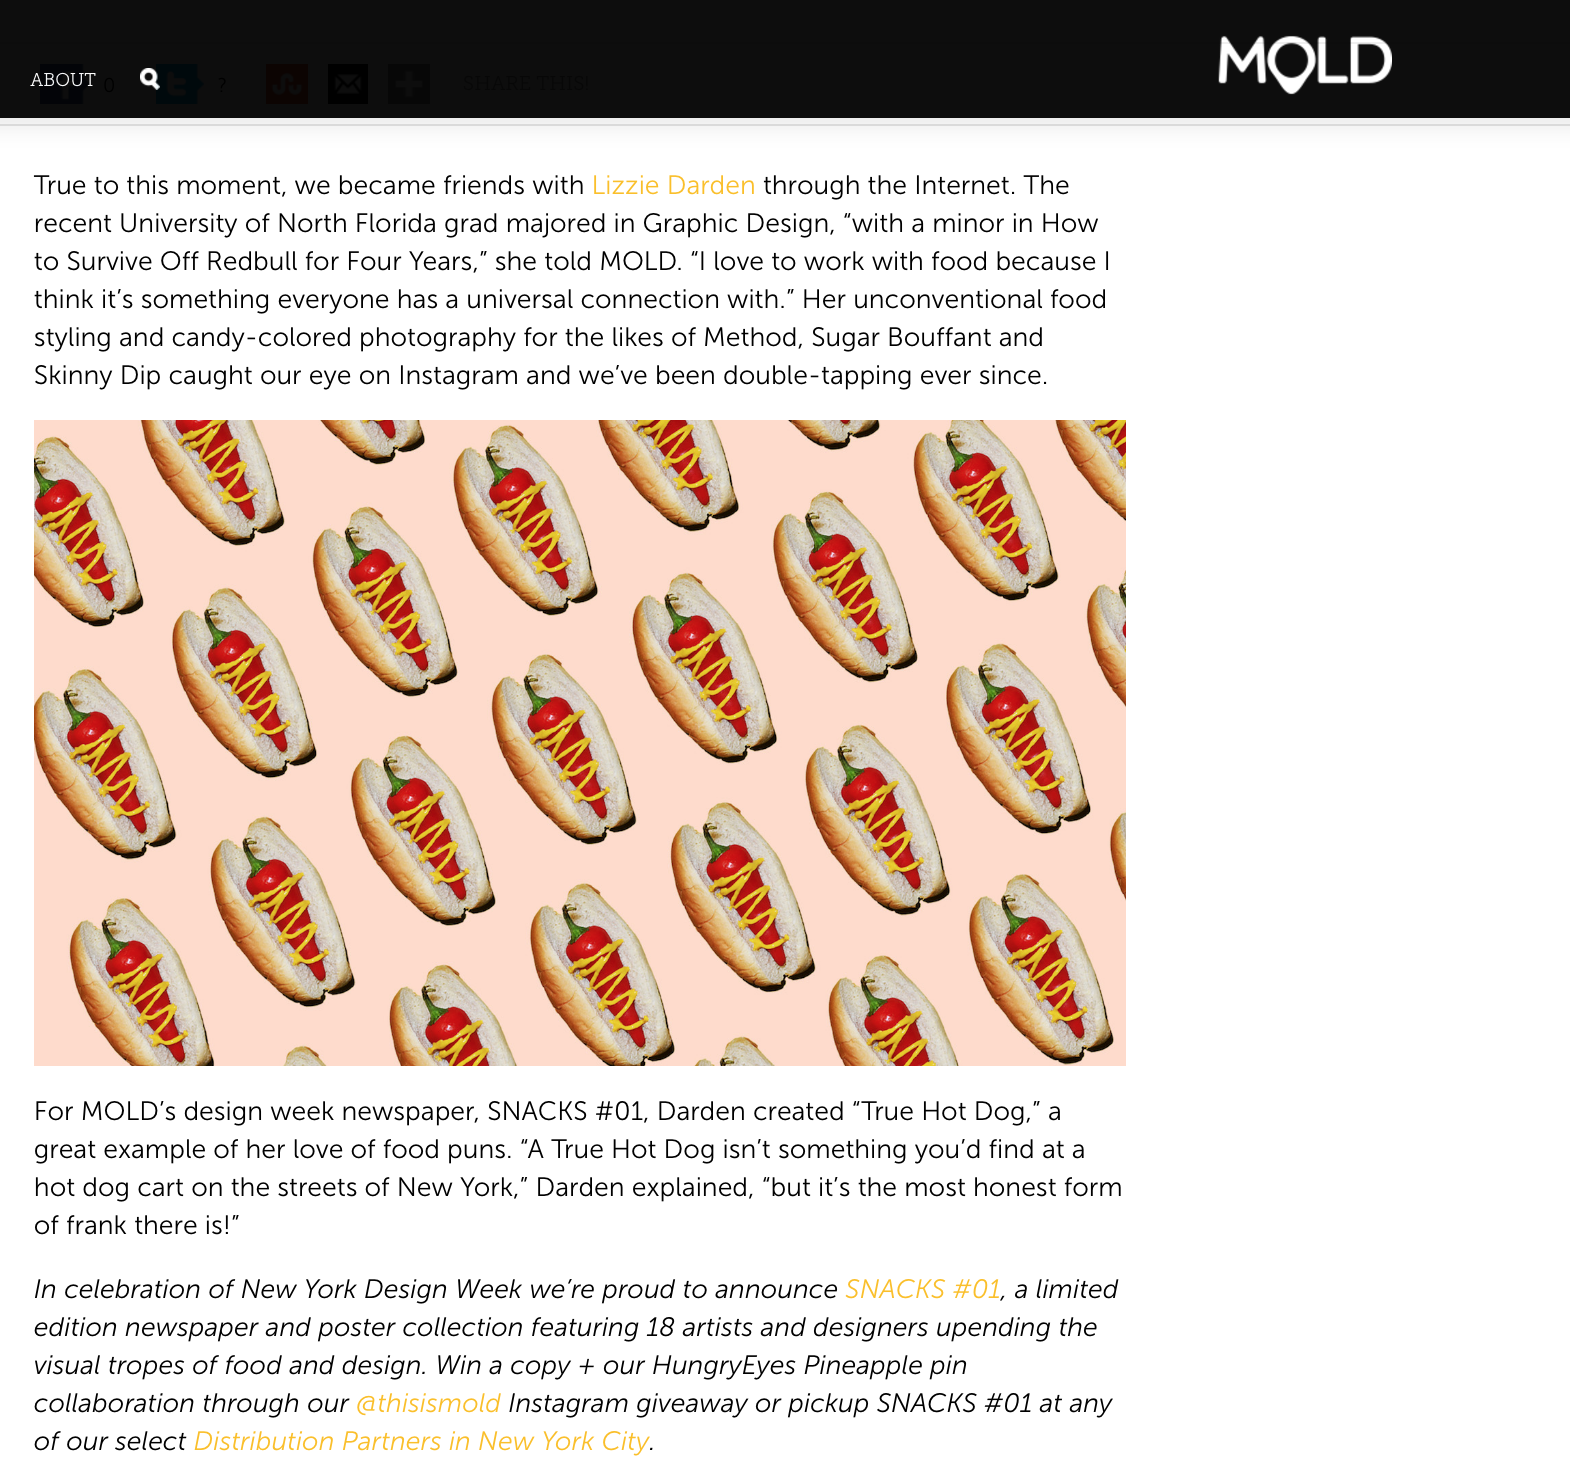 Mold Feature